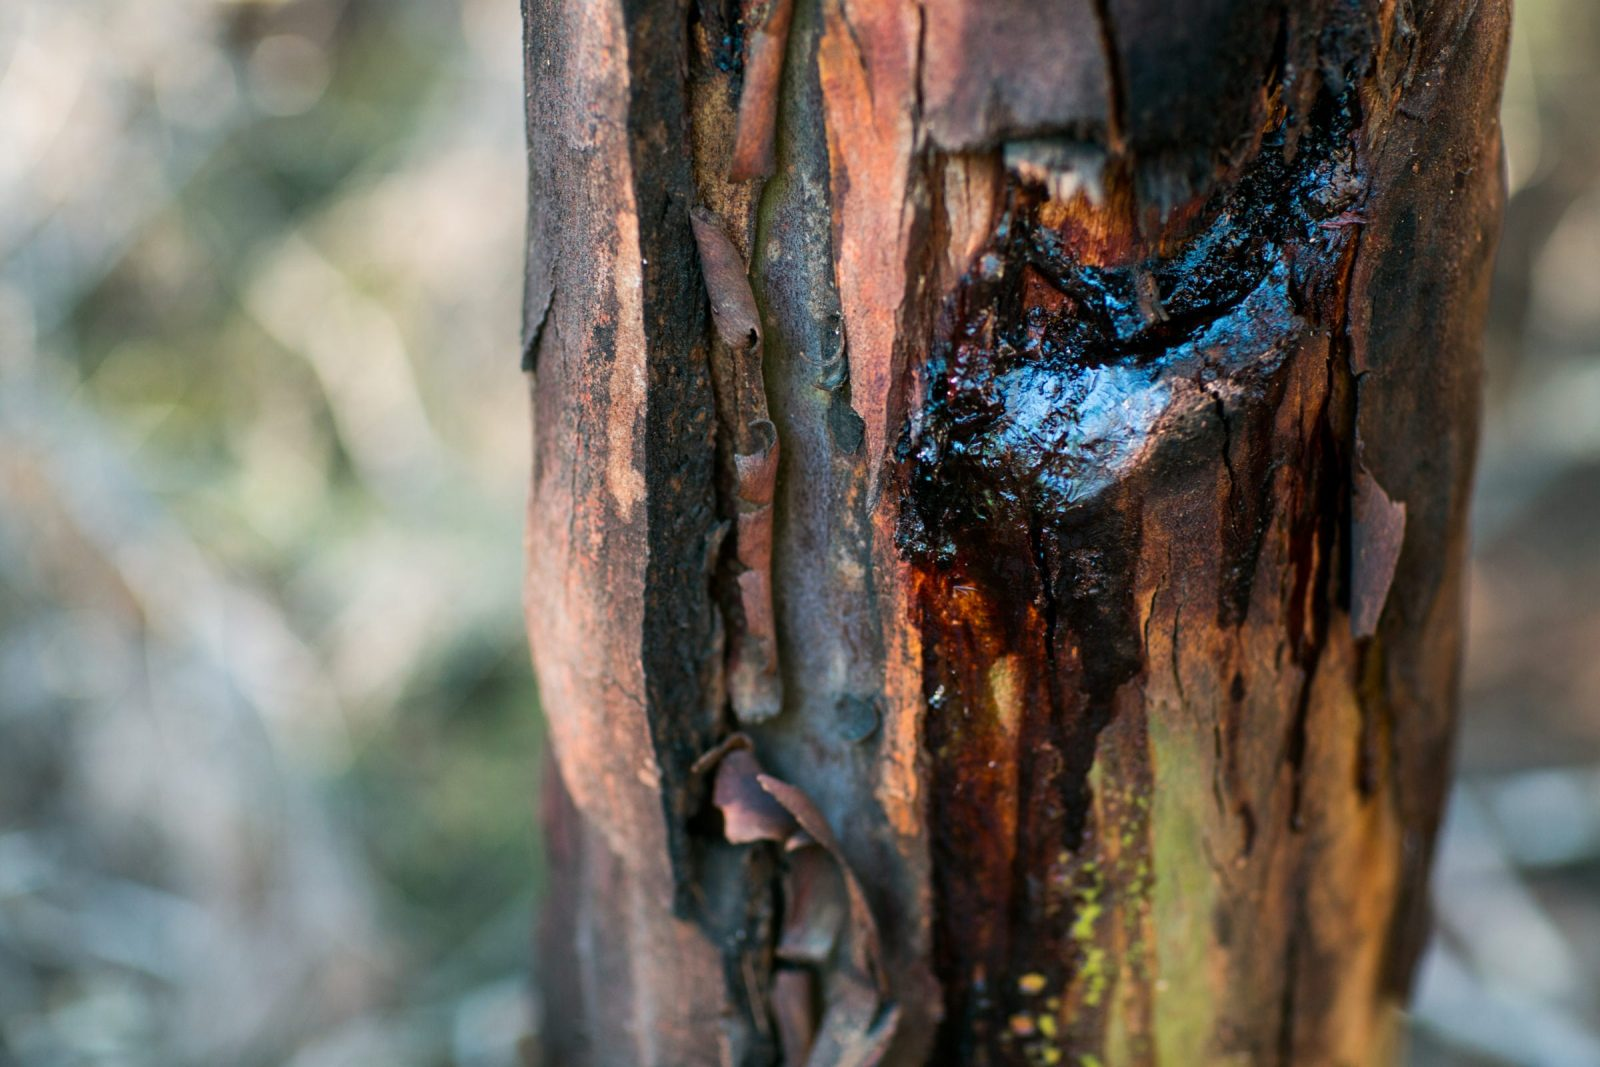 Photograph of tree sap at Firesticks Workshop at Bundanon Trust in Illaroo on the South Coast of NSW